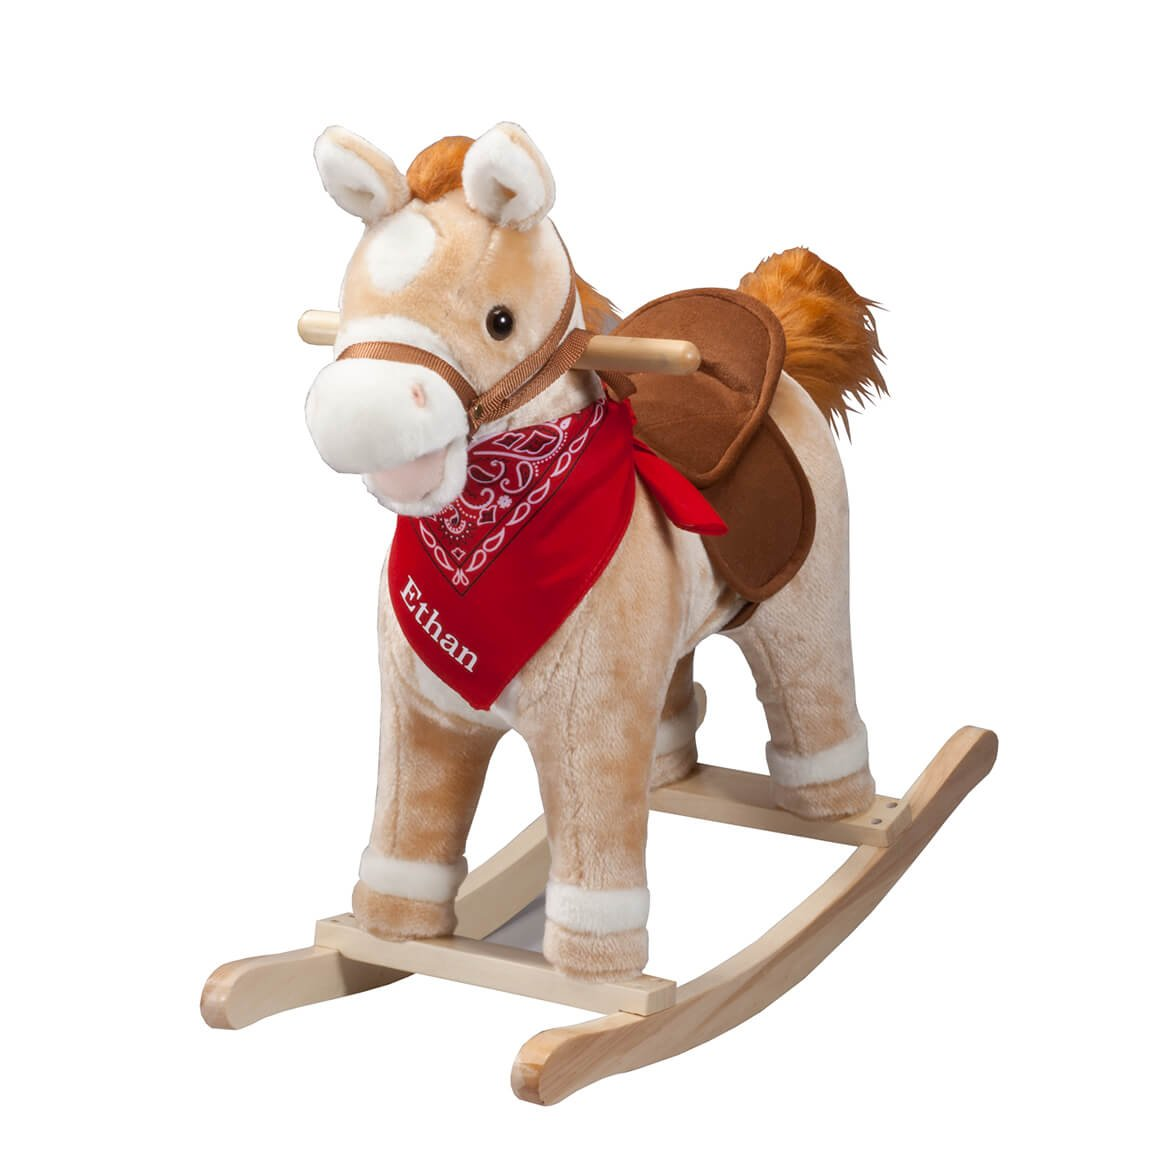 Miles Kimball Personalized Animated Rocking Horse with Sound